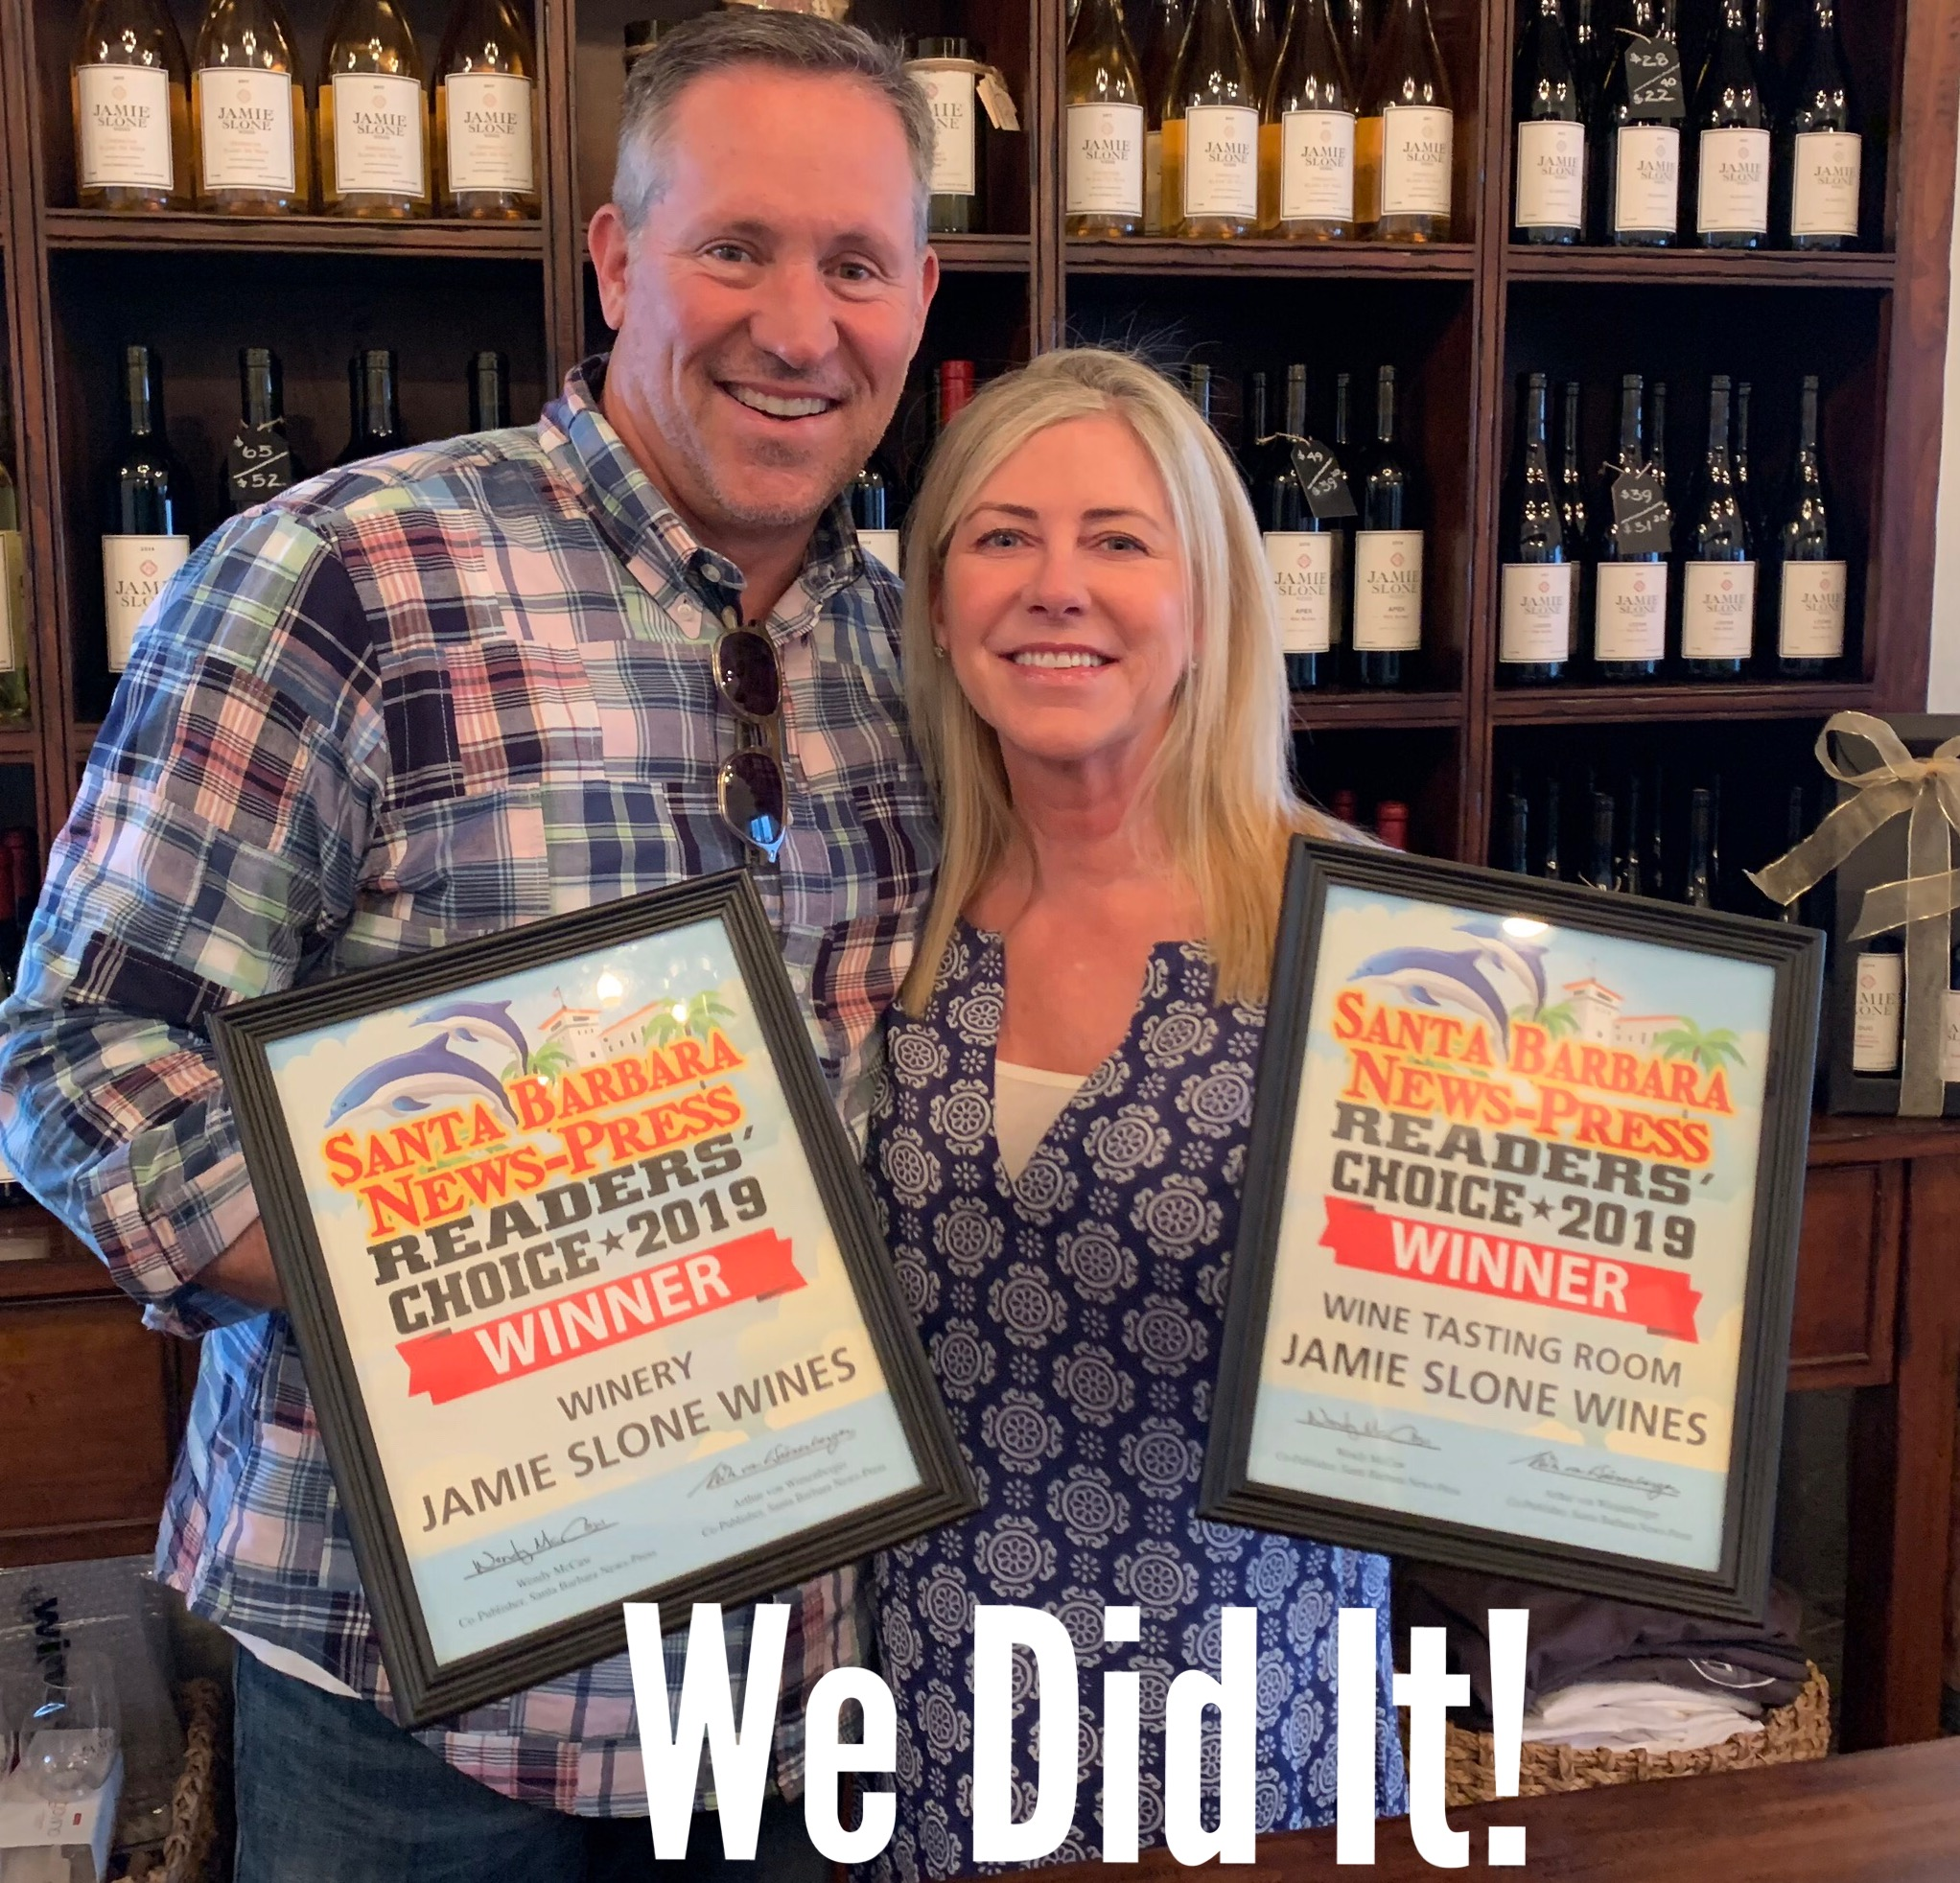 We Did It... 2019 Favorite Winery and Favorite Tasting Room!